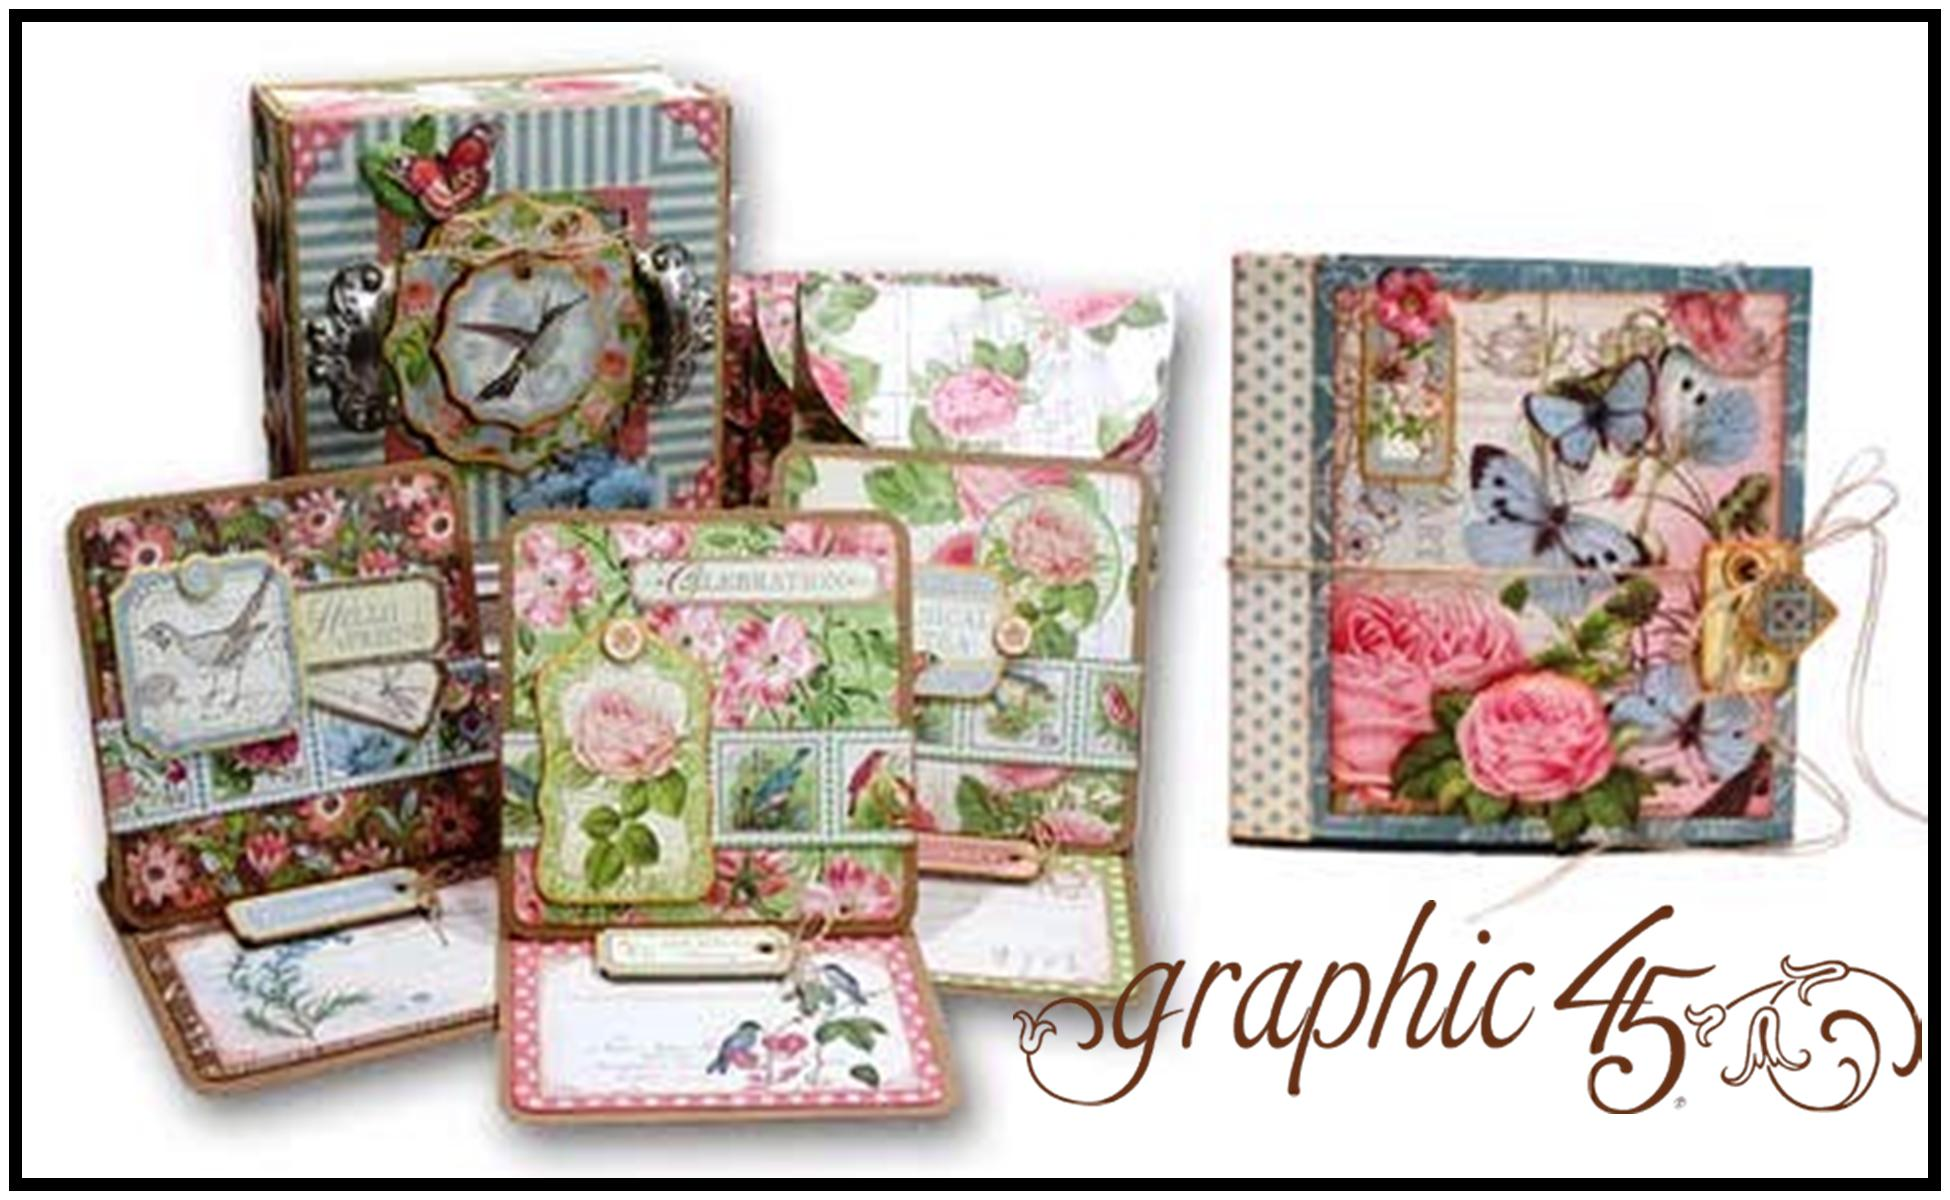 G45 Botanical Tea Box, Card Set, Waterfall Album 5